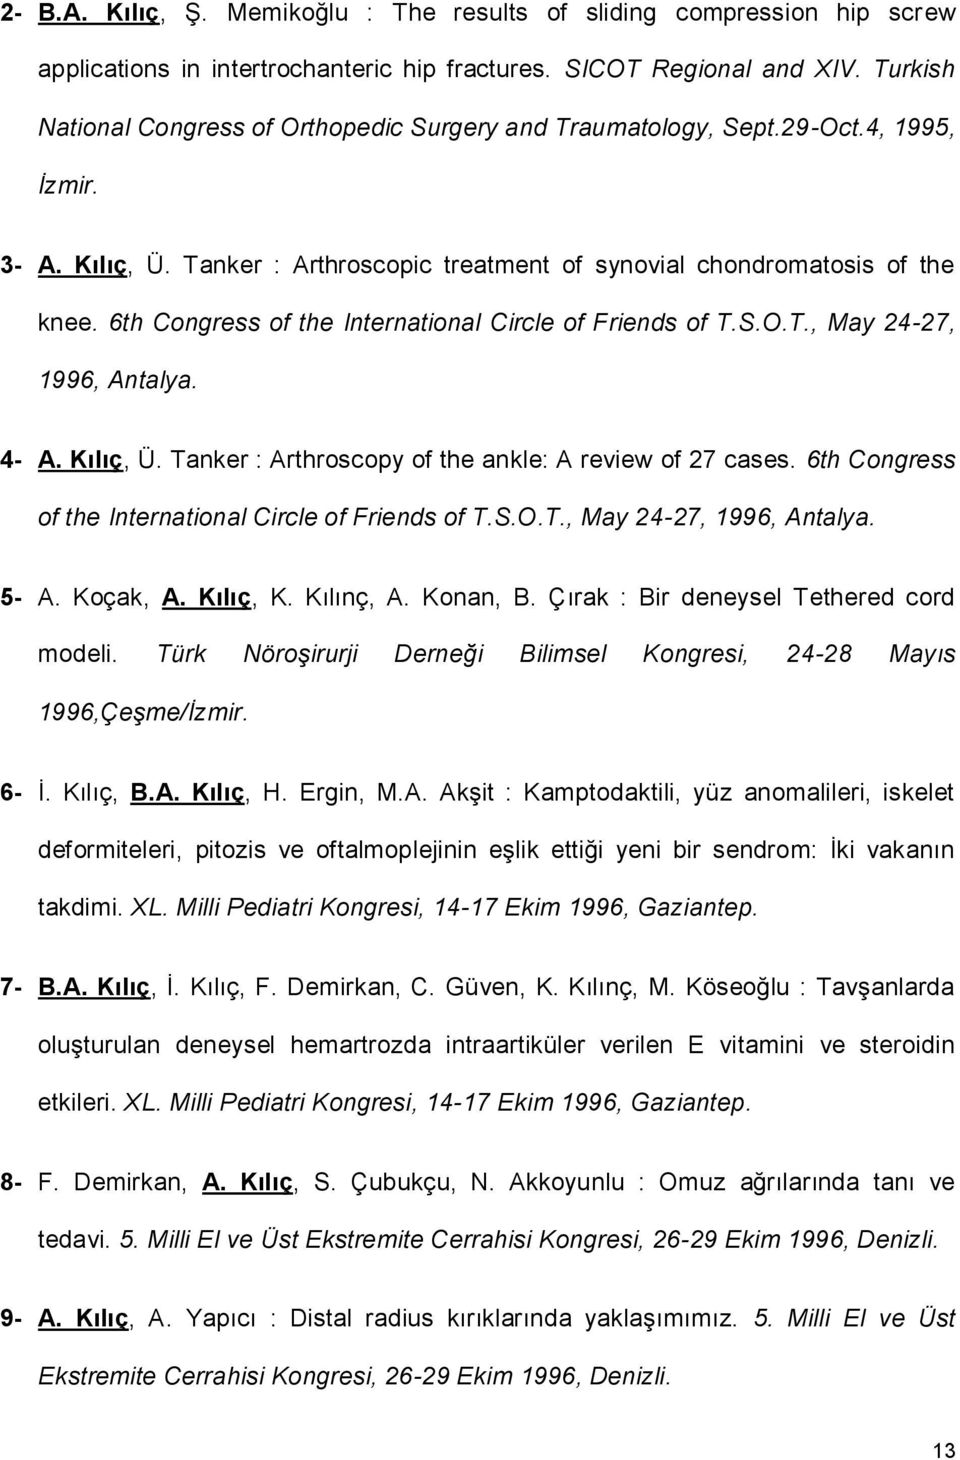 6th Congress of the International Circle of Friends of T.S.O.T., May 24-27, 1996, Antalya. 4- A. Kılıç, Ü. Tanker : Arthroscopy of the ankle: A review of 27 cases.